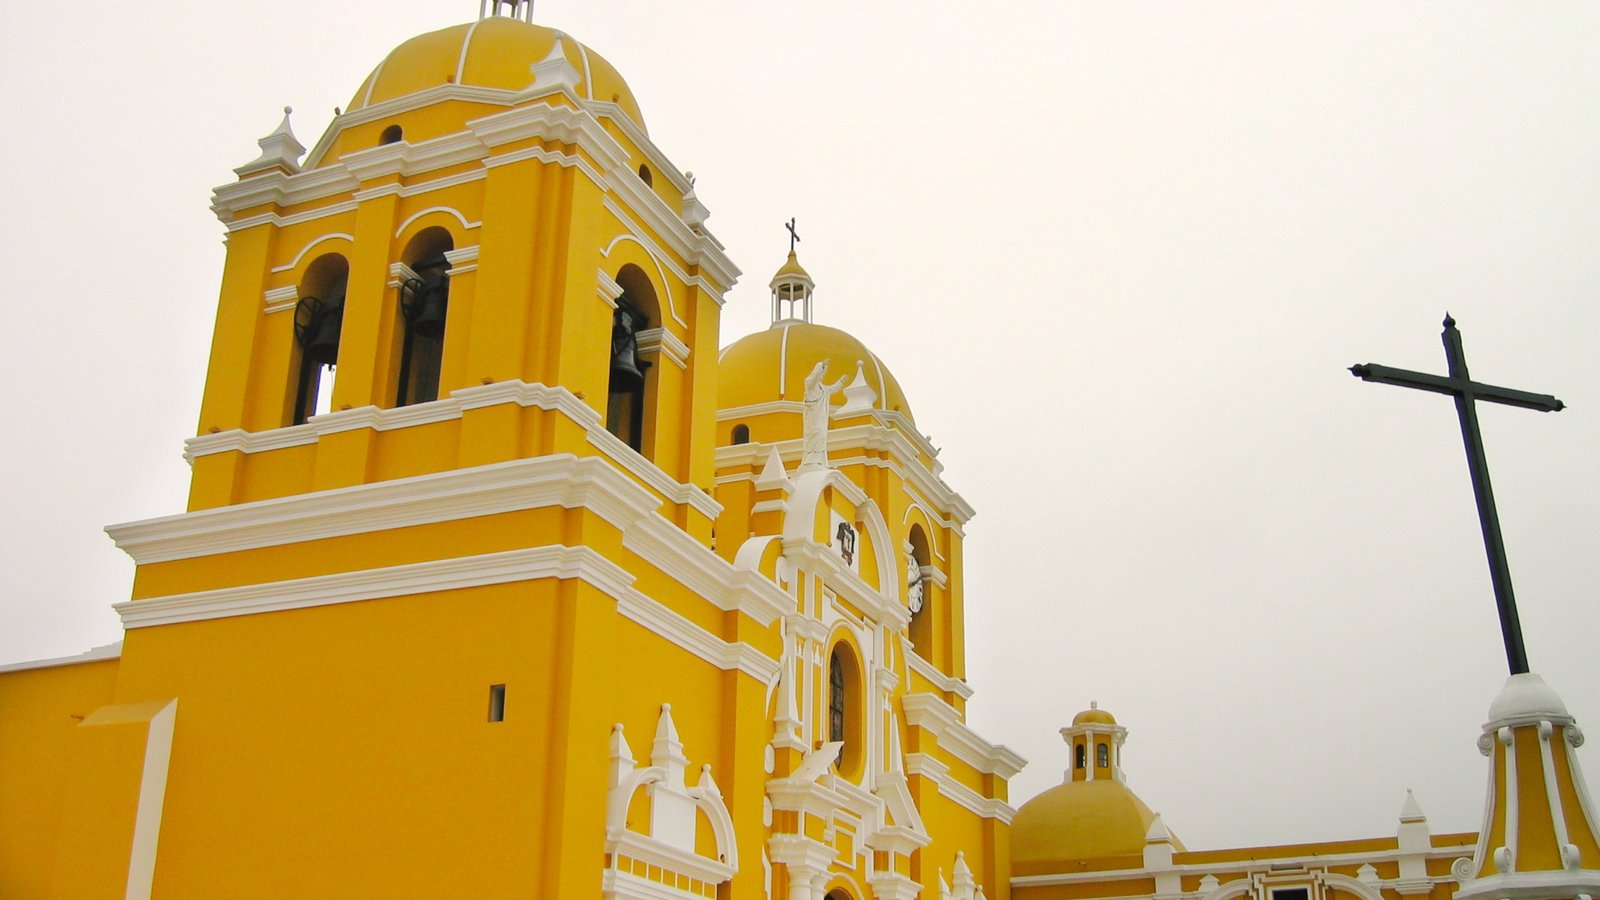 Trujillo which includes religious aspects, heritage architecture and a church or cathedral